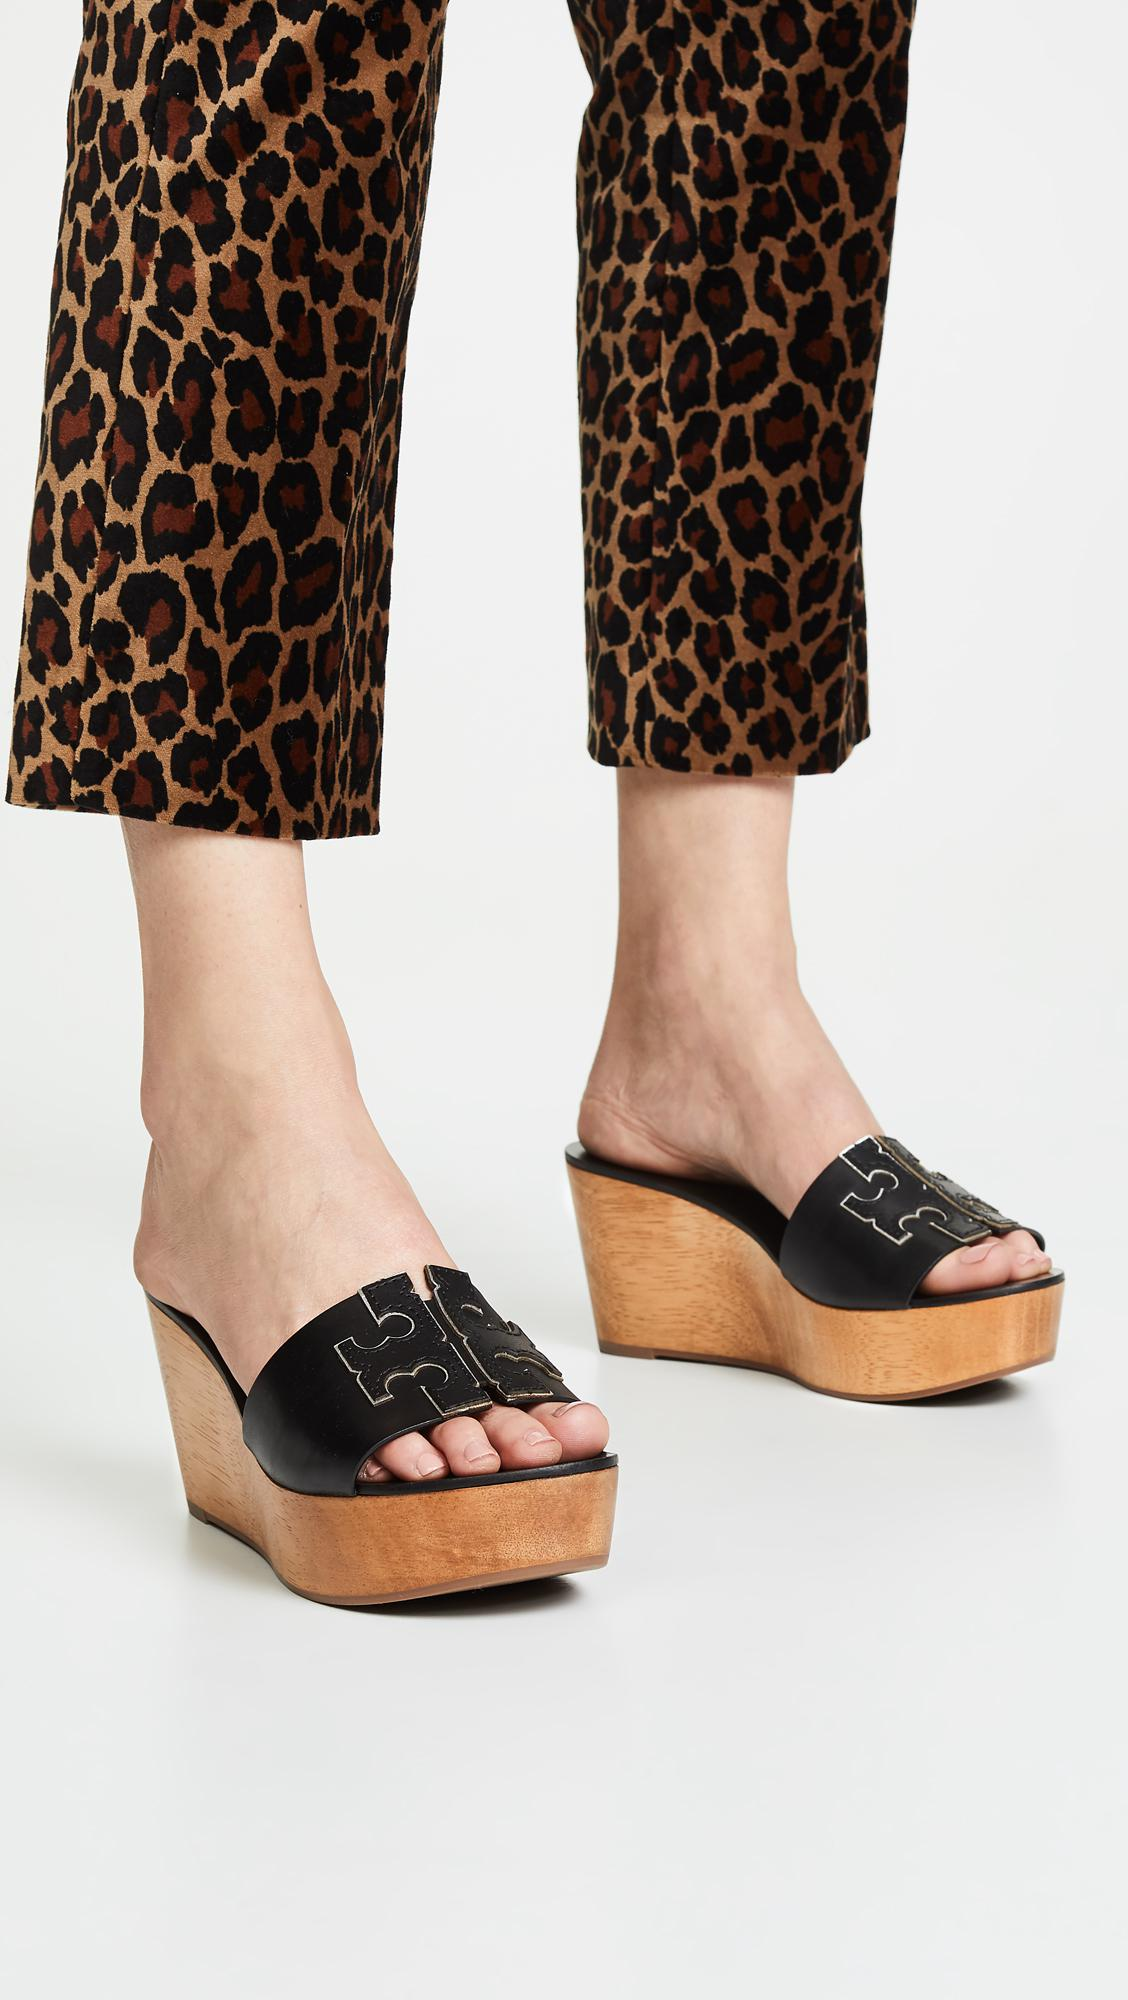 51421a213 Tory Burch Ines 80mm Wedge Slides in Black - Save 1% - Lyst